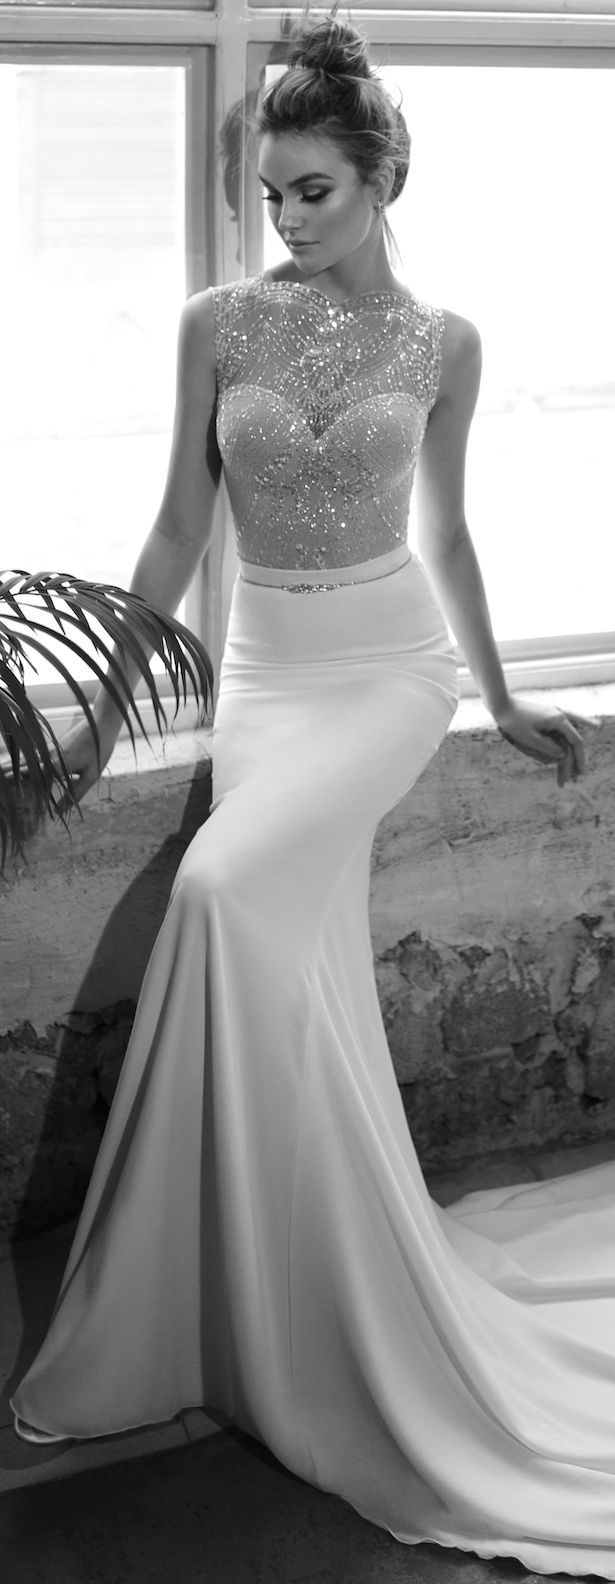 Wedding Dress by Julie Vino 2017 Romanzo Collection   Sleeveless, illusion neckline fitted bridal gown Designer: Julie Vino SEE POST SEE GALLERY